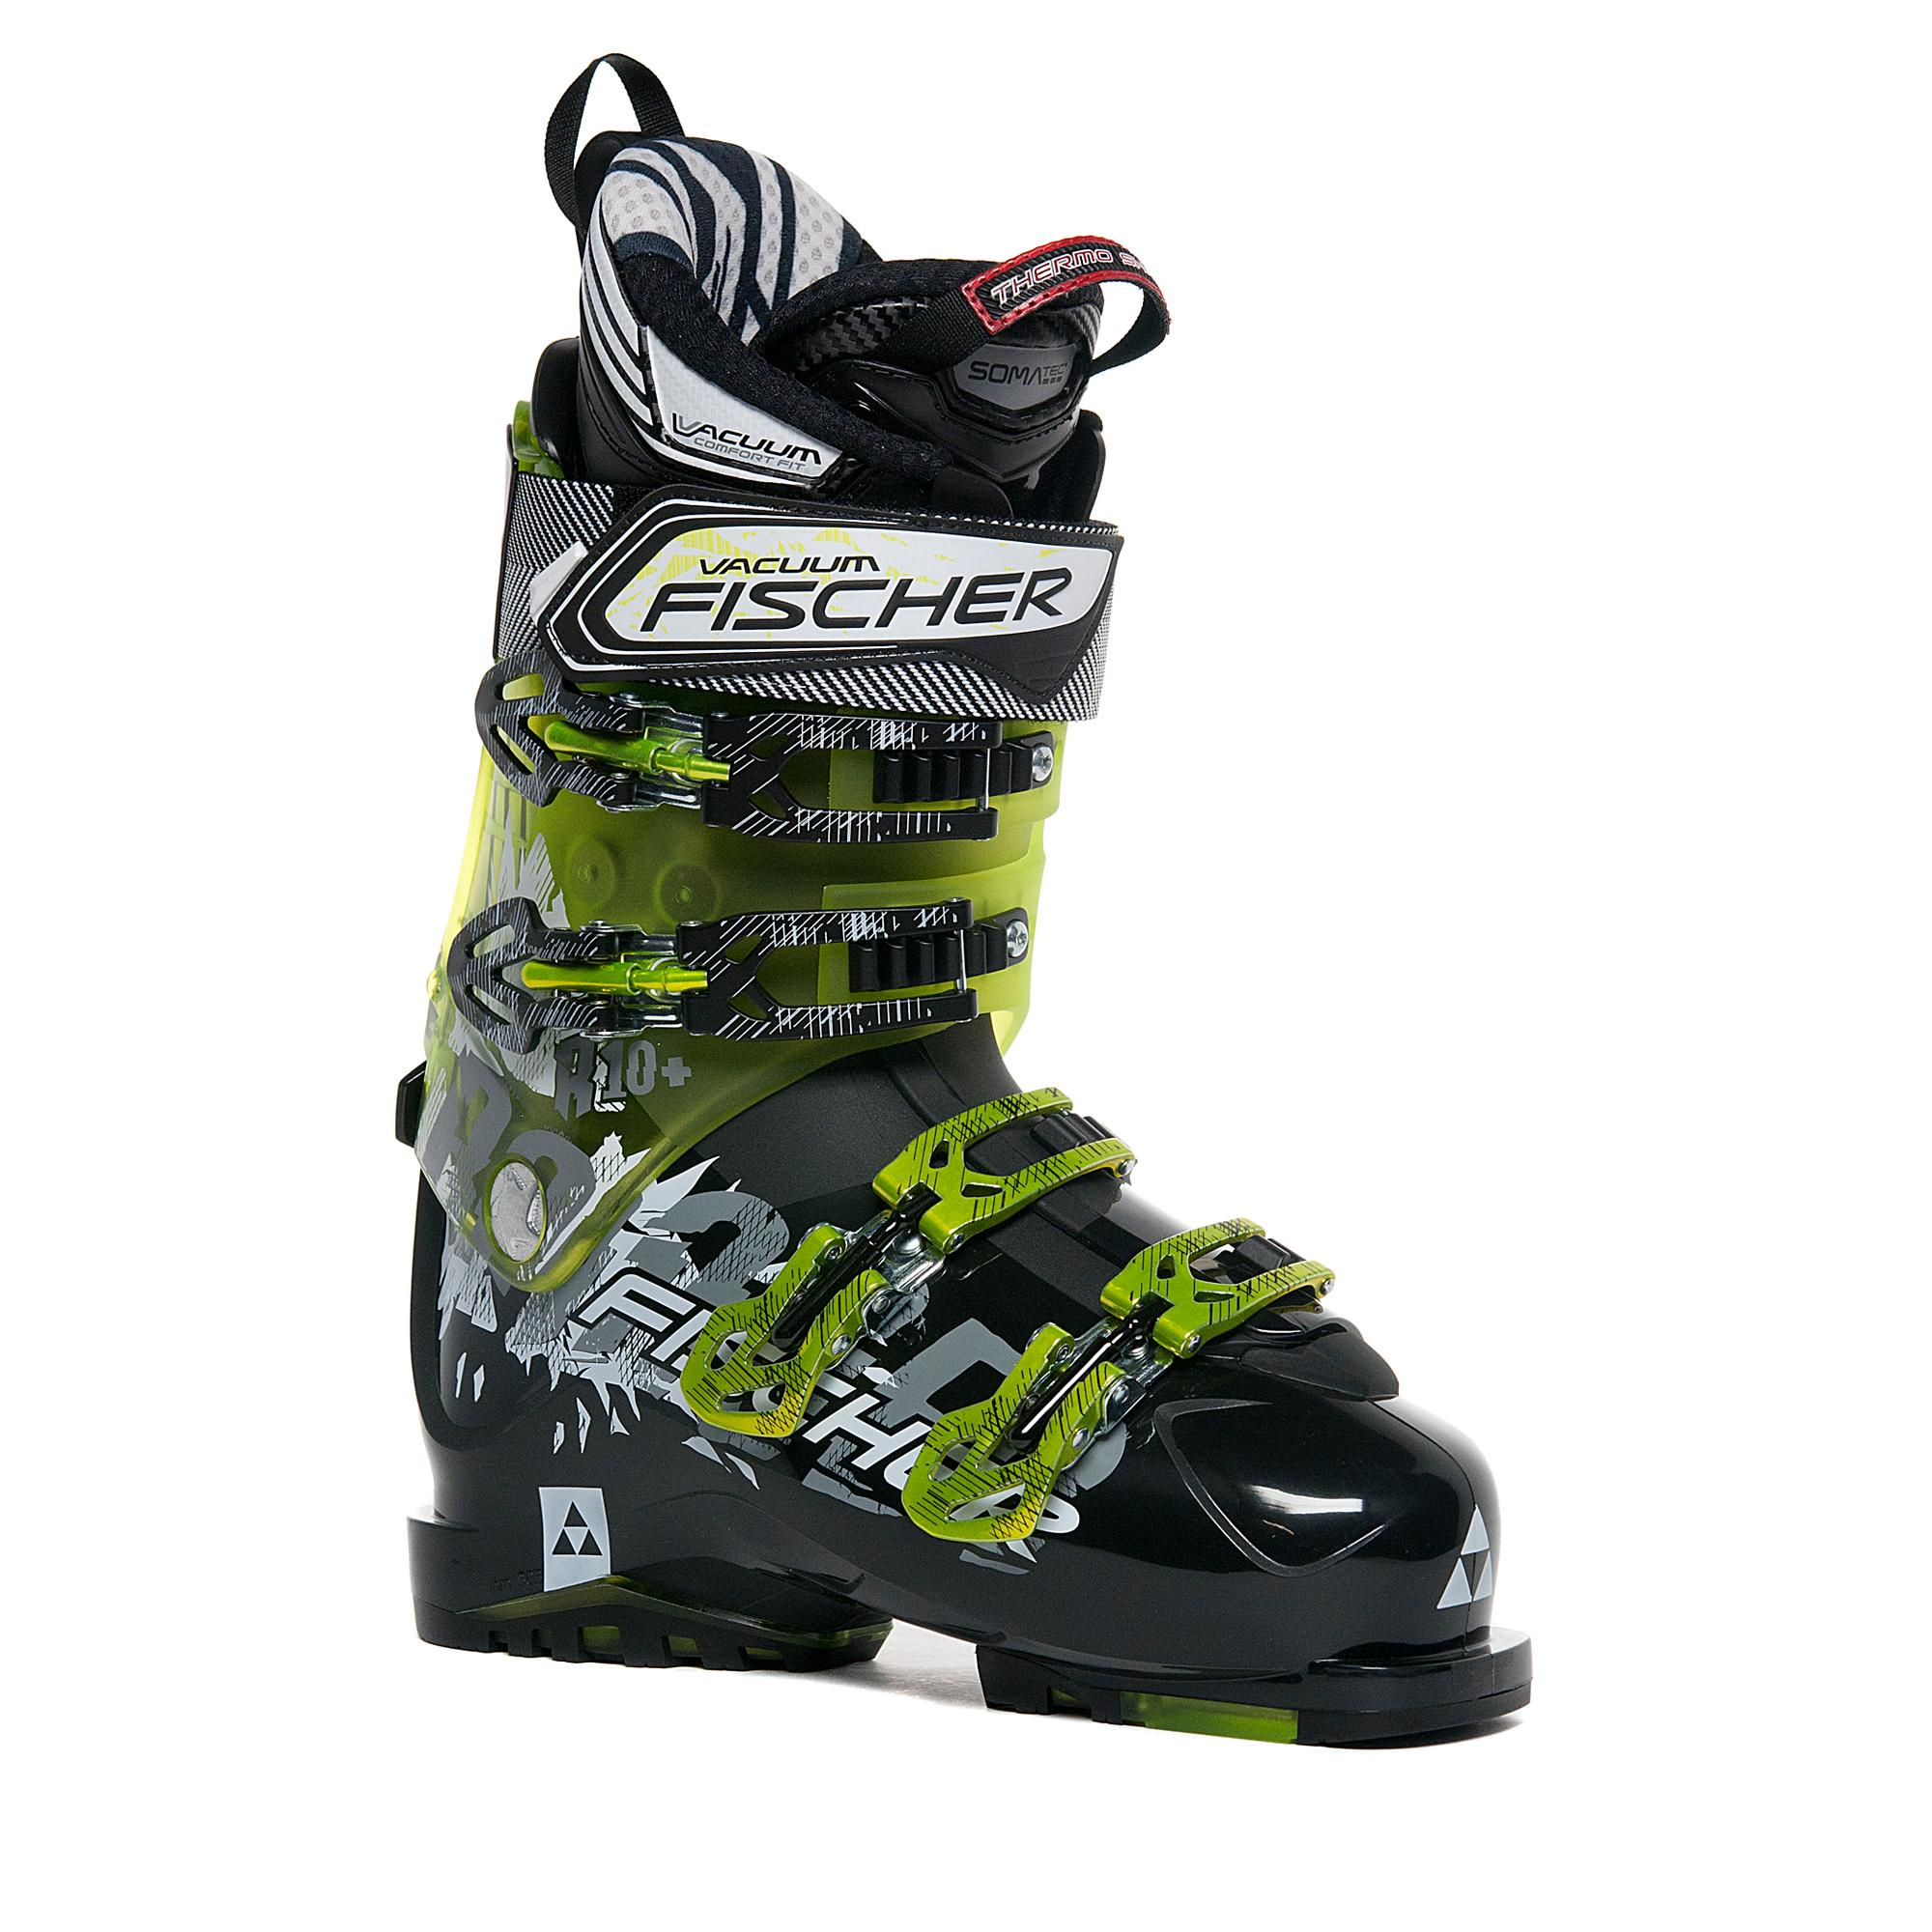 Fischer Sports Men's Ranger 10+ Vacuum Ski Boots, Black